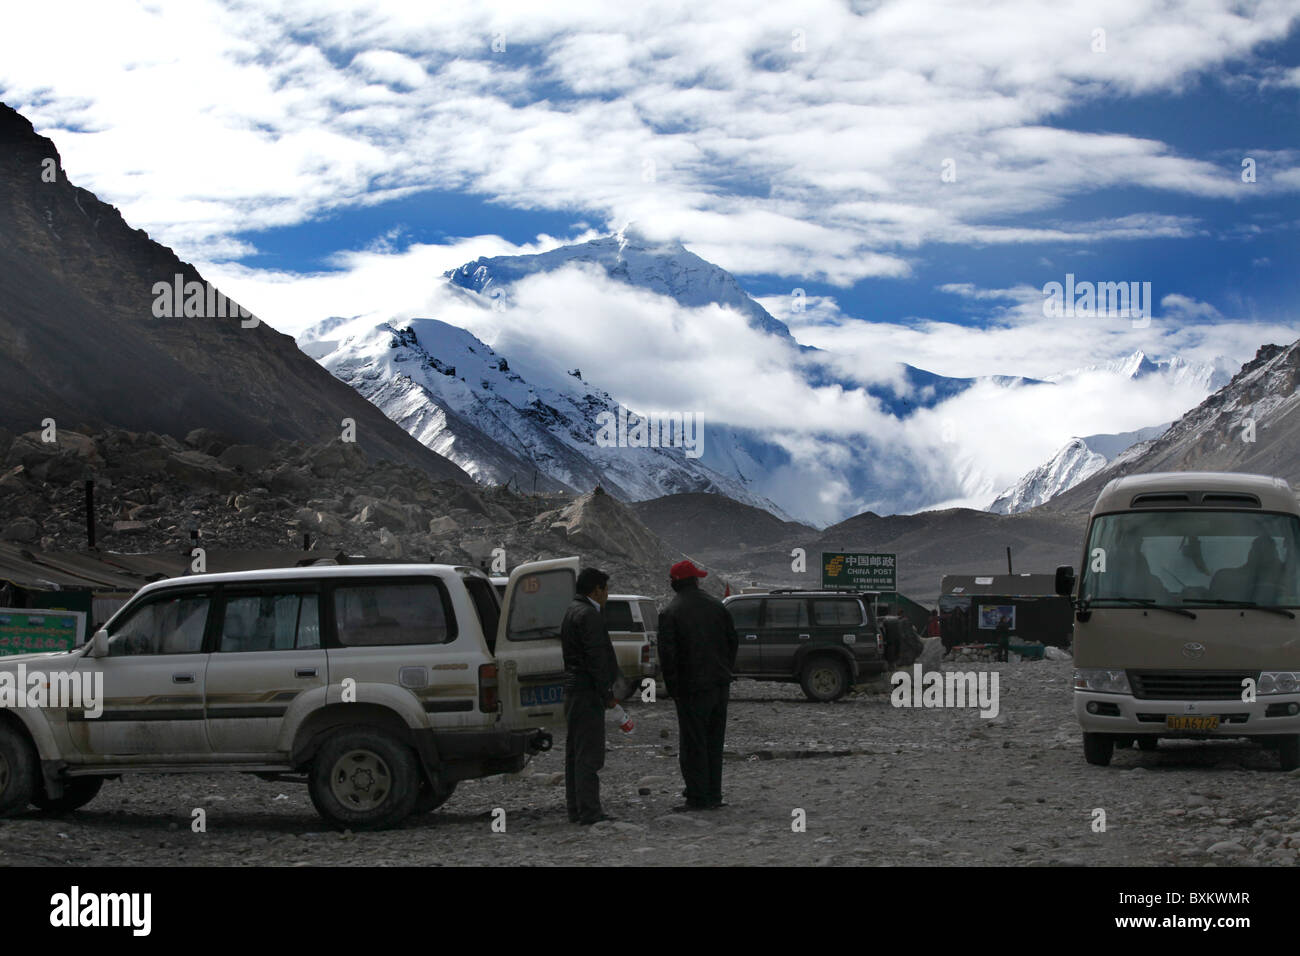 Tourist trucks at Everest Base Camp with a view of Everest or Qomolangma in Tibet, China. - Stock Image